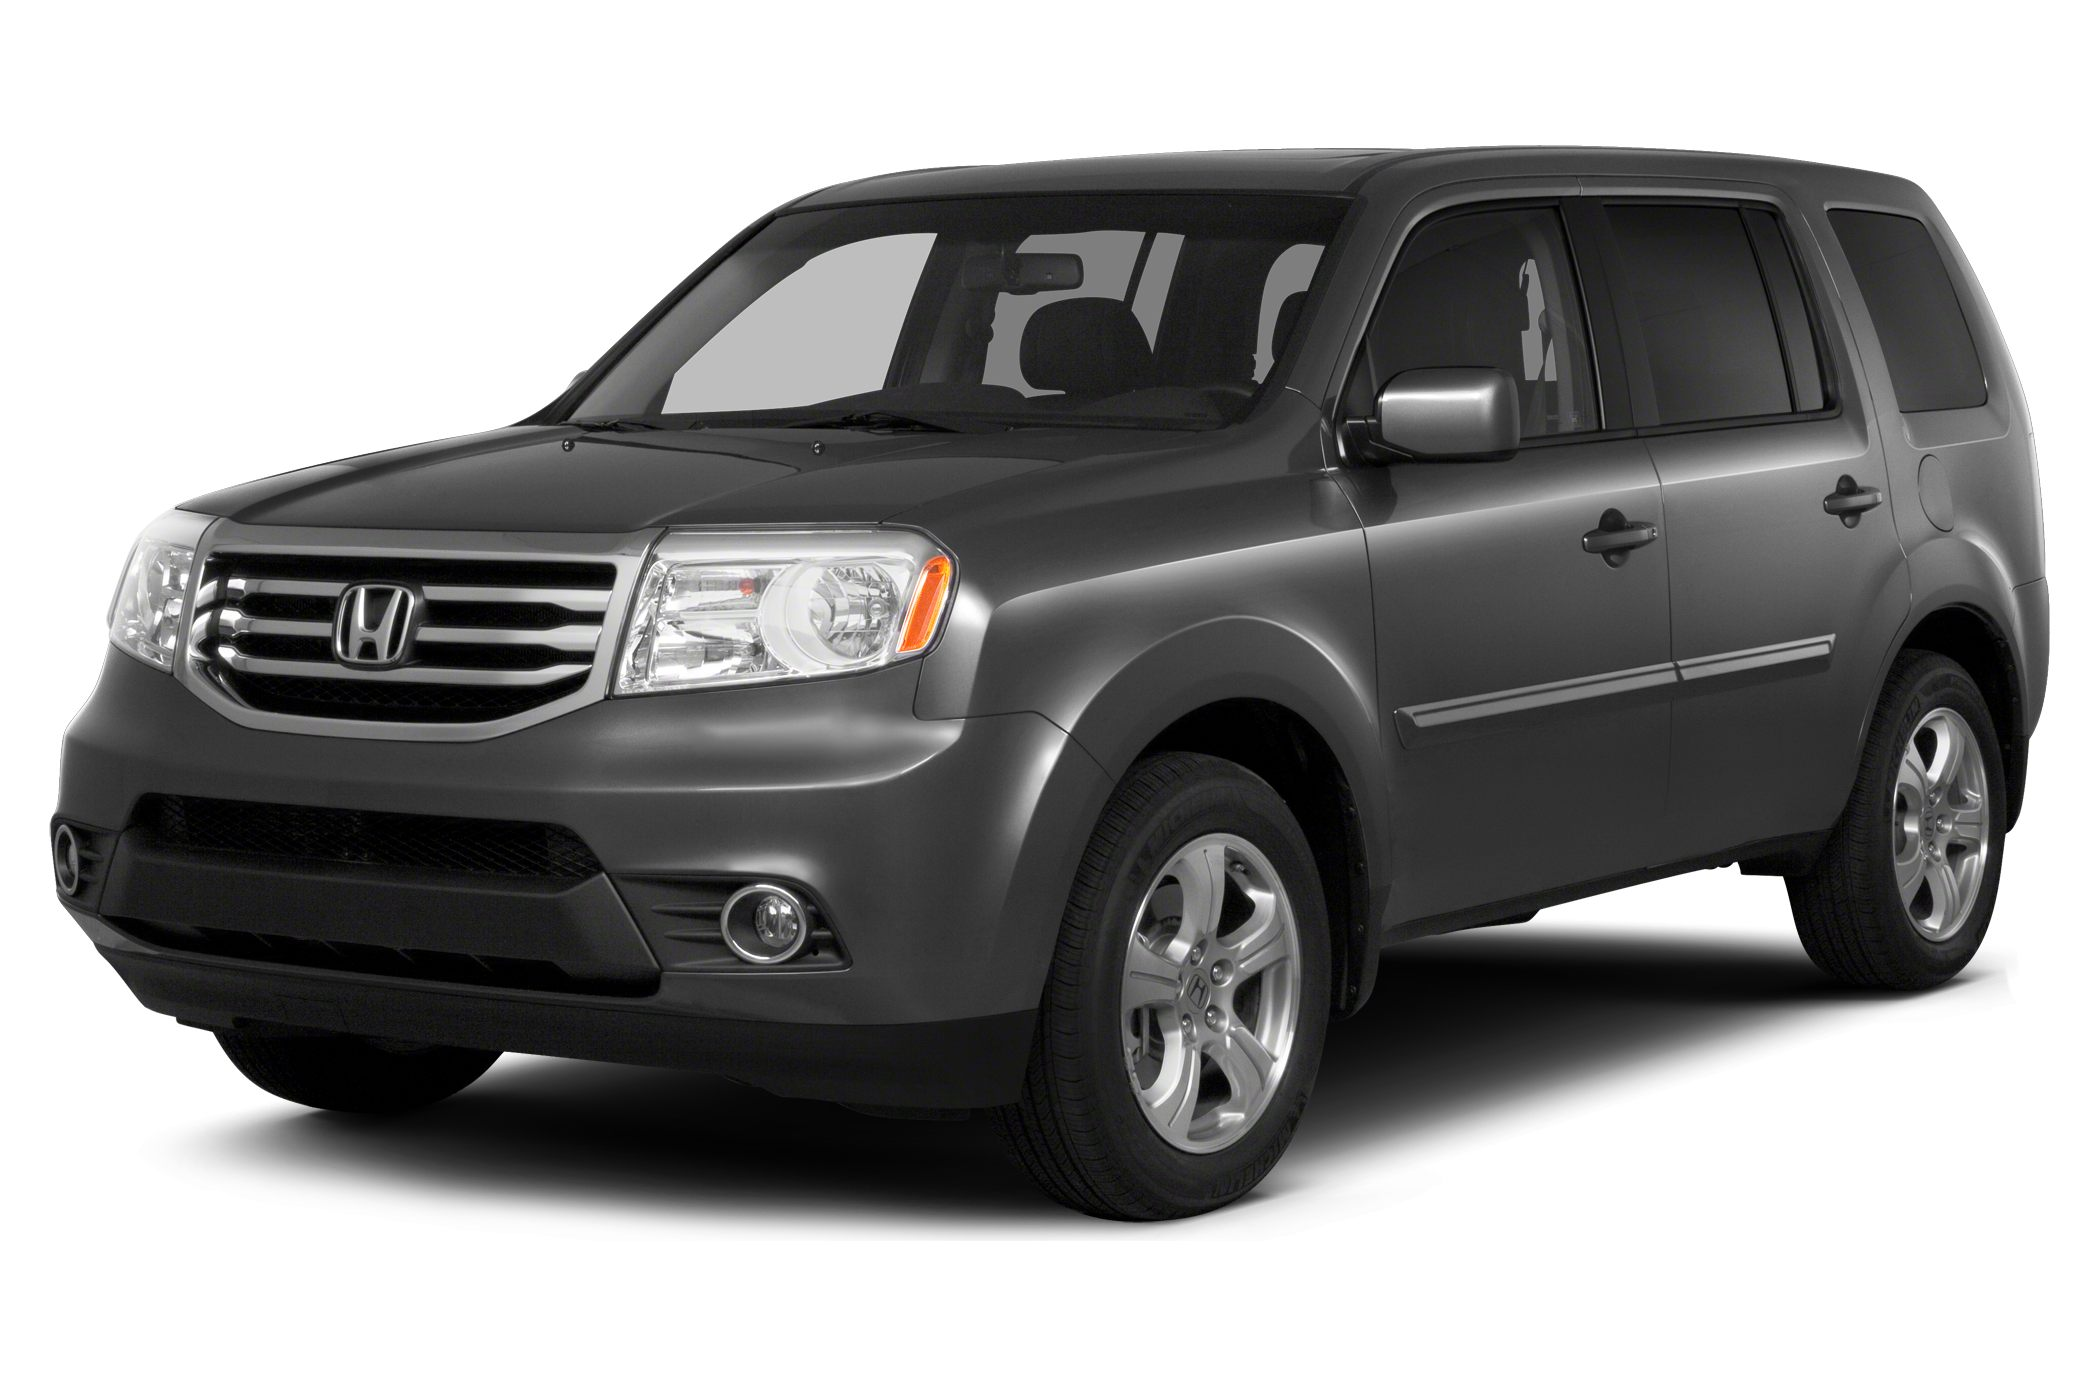 2015 Honda Pilot EX SUV for sale in Valdosta for $36,400 with 12 miles